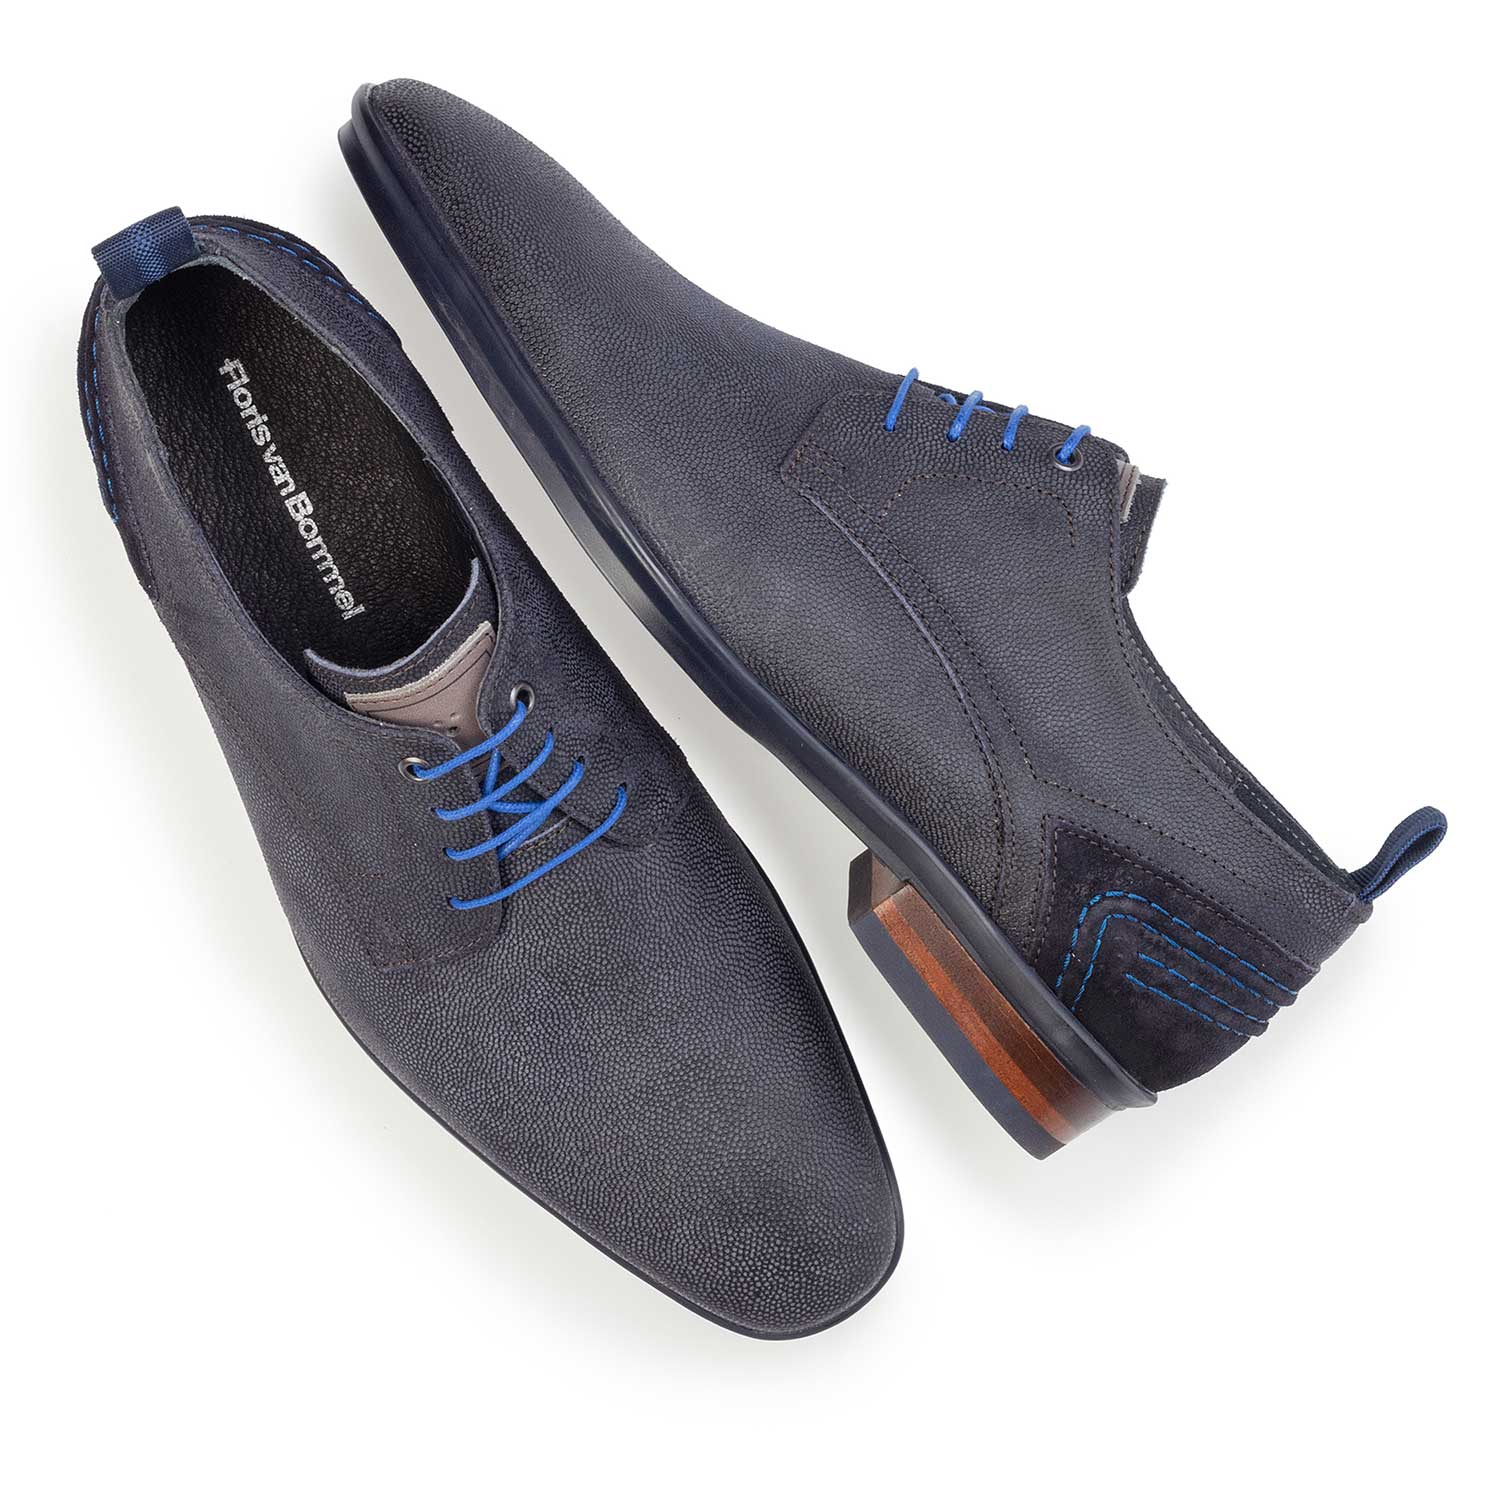 14007/01 - Dark blue patterned lace shoe made of suede leather